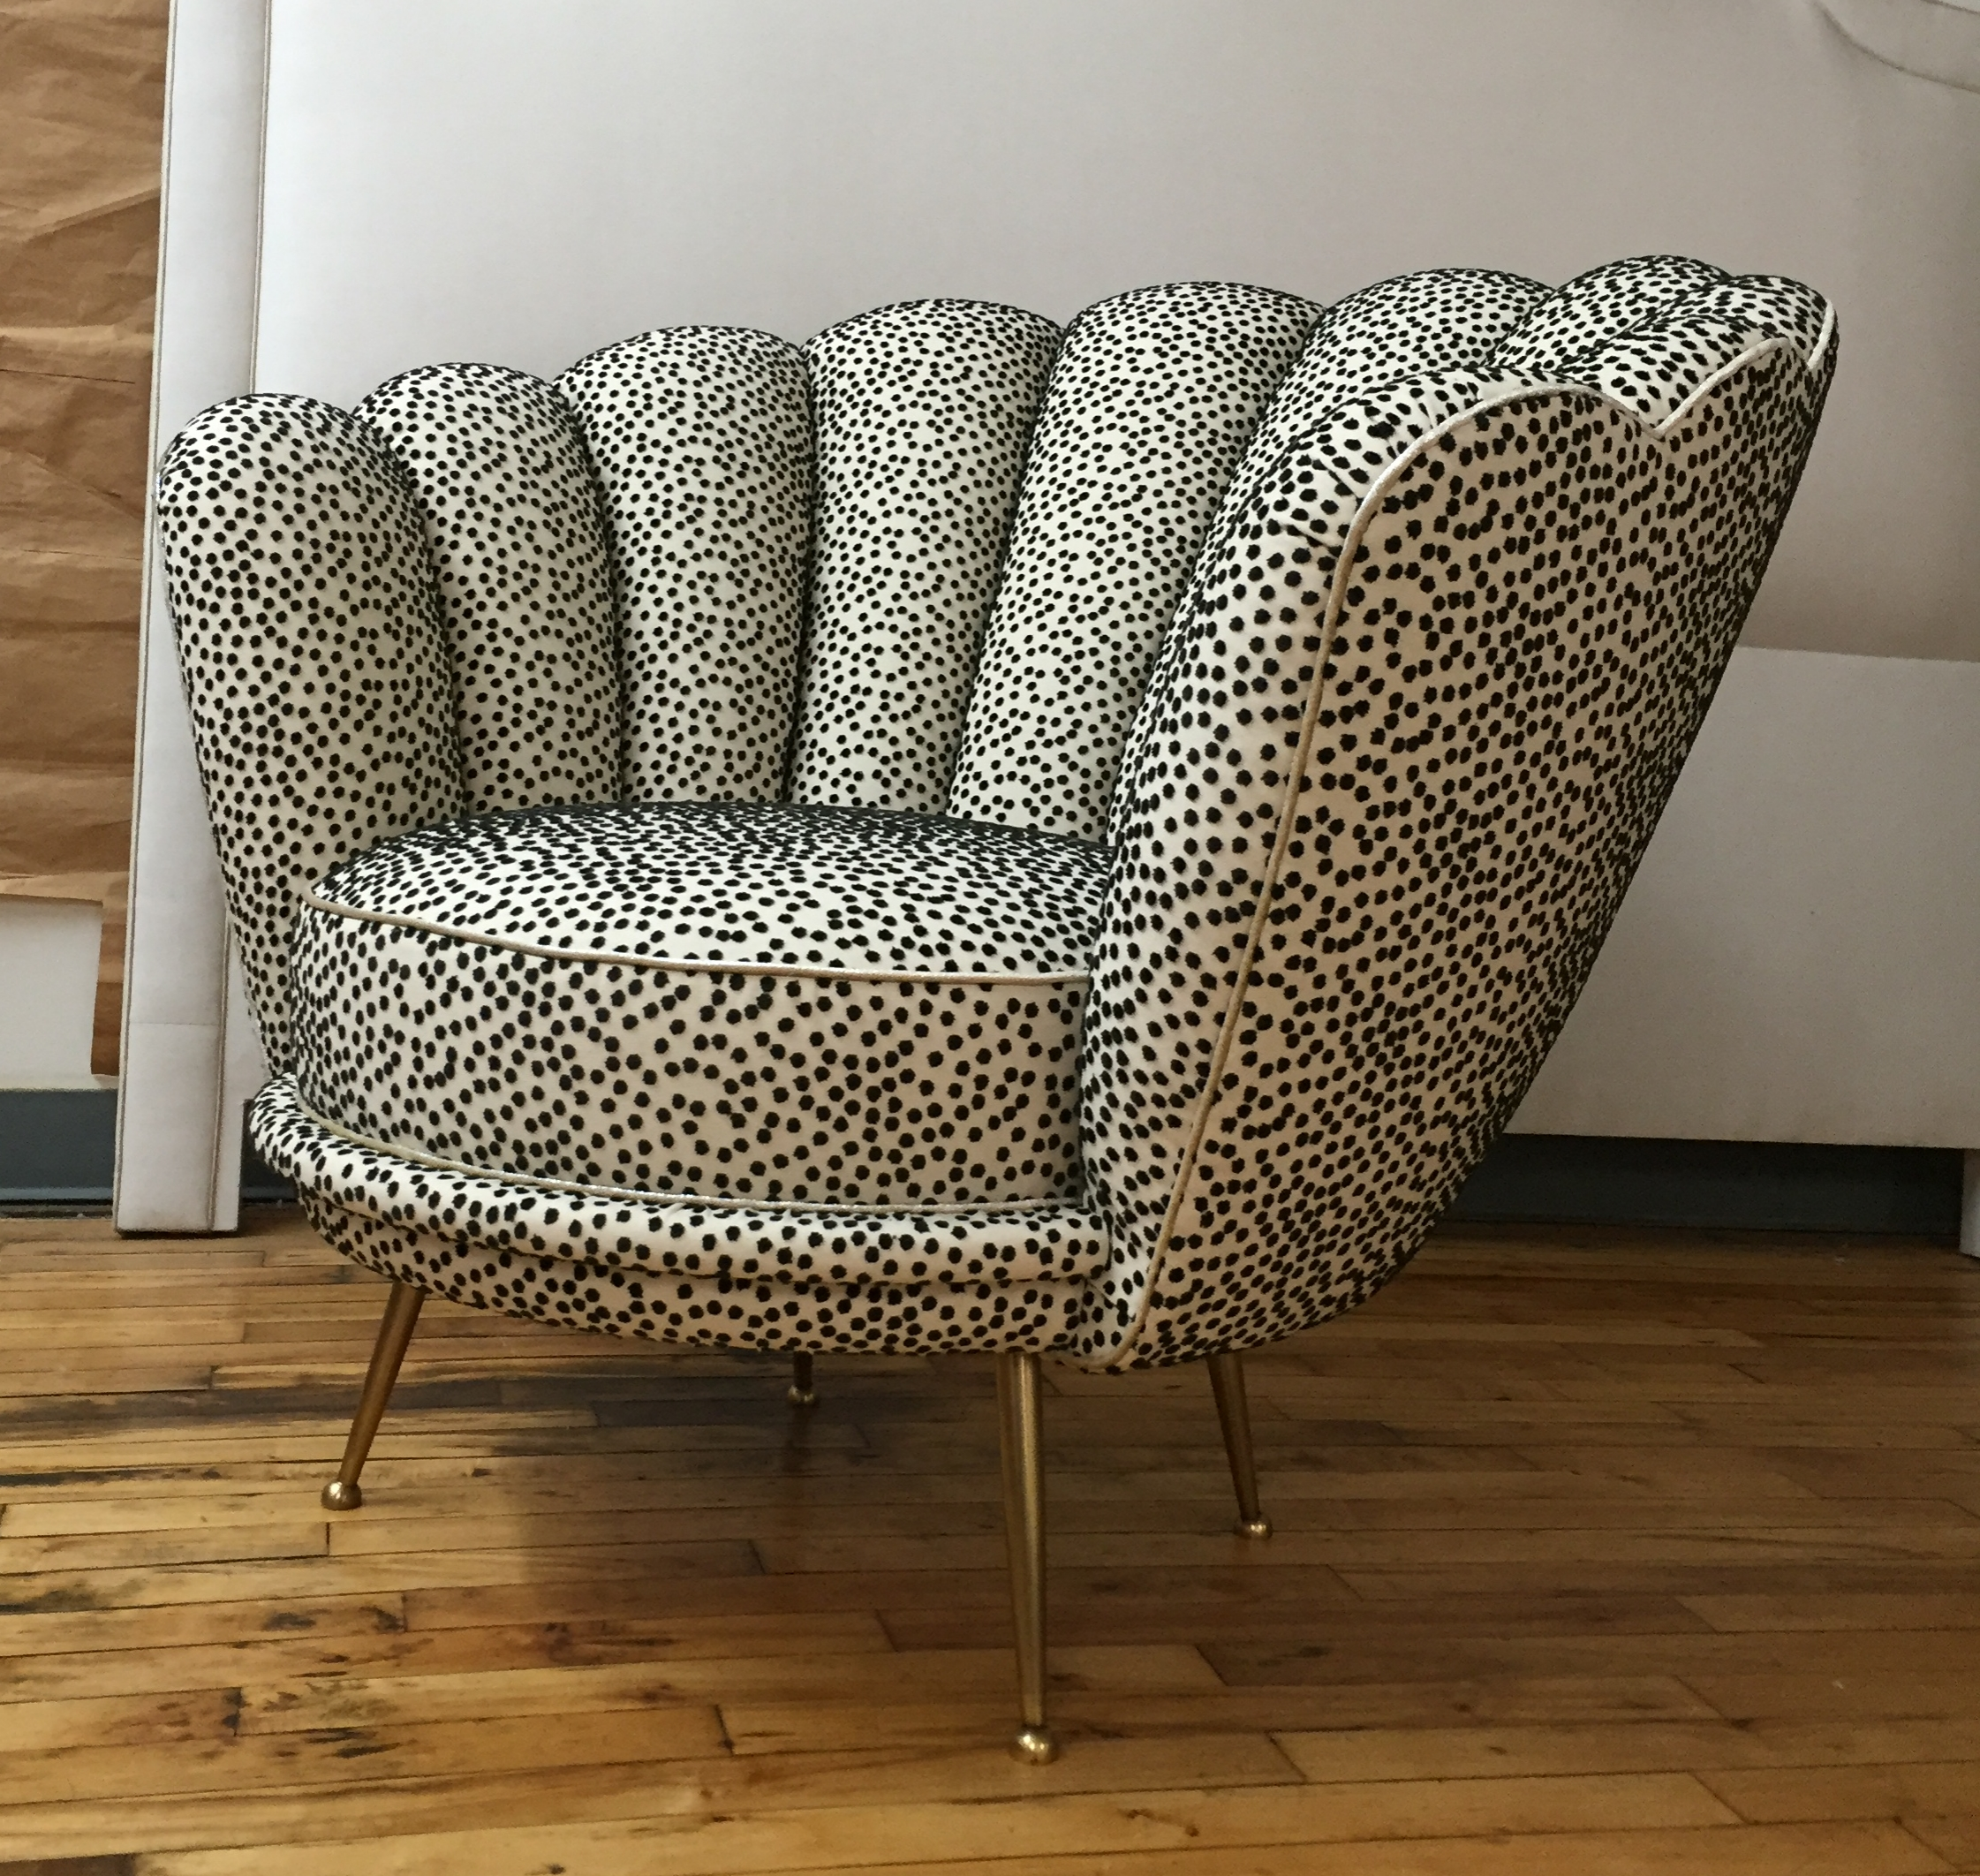 Custom Shell-form chair with brass feet for Kirill Istomin by Victoria & Son